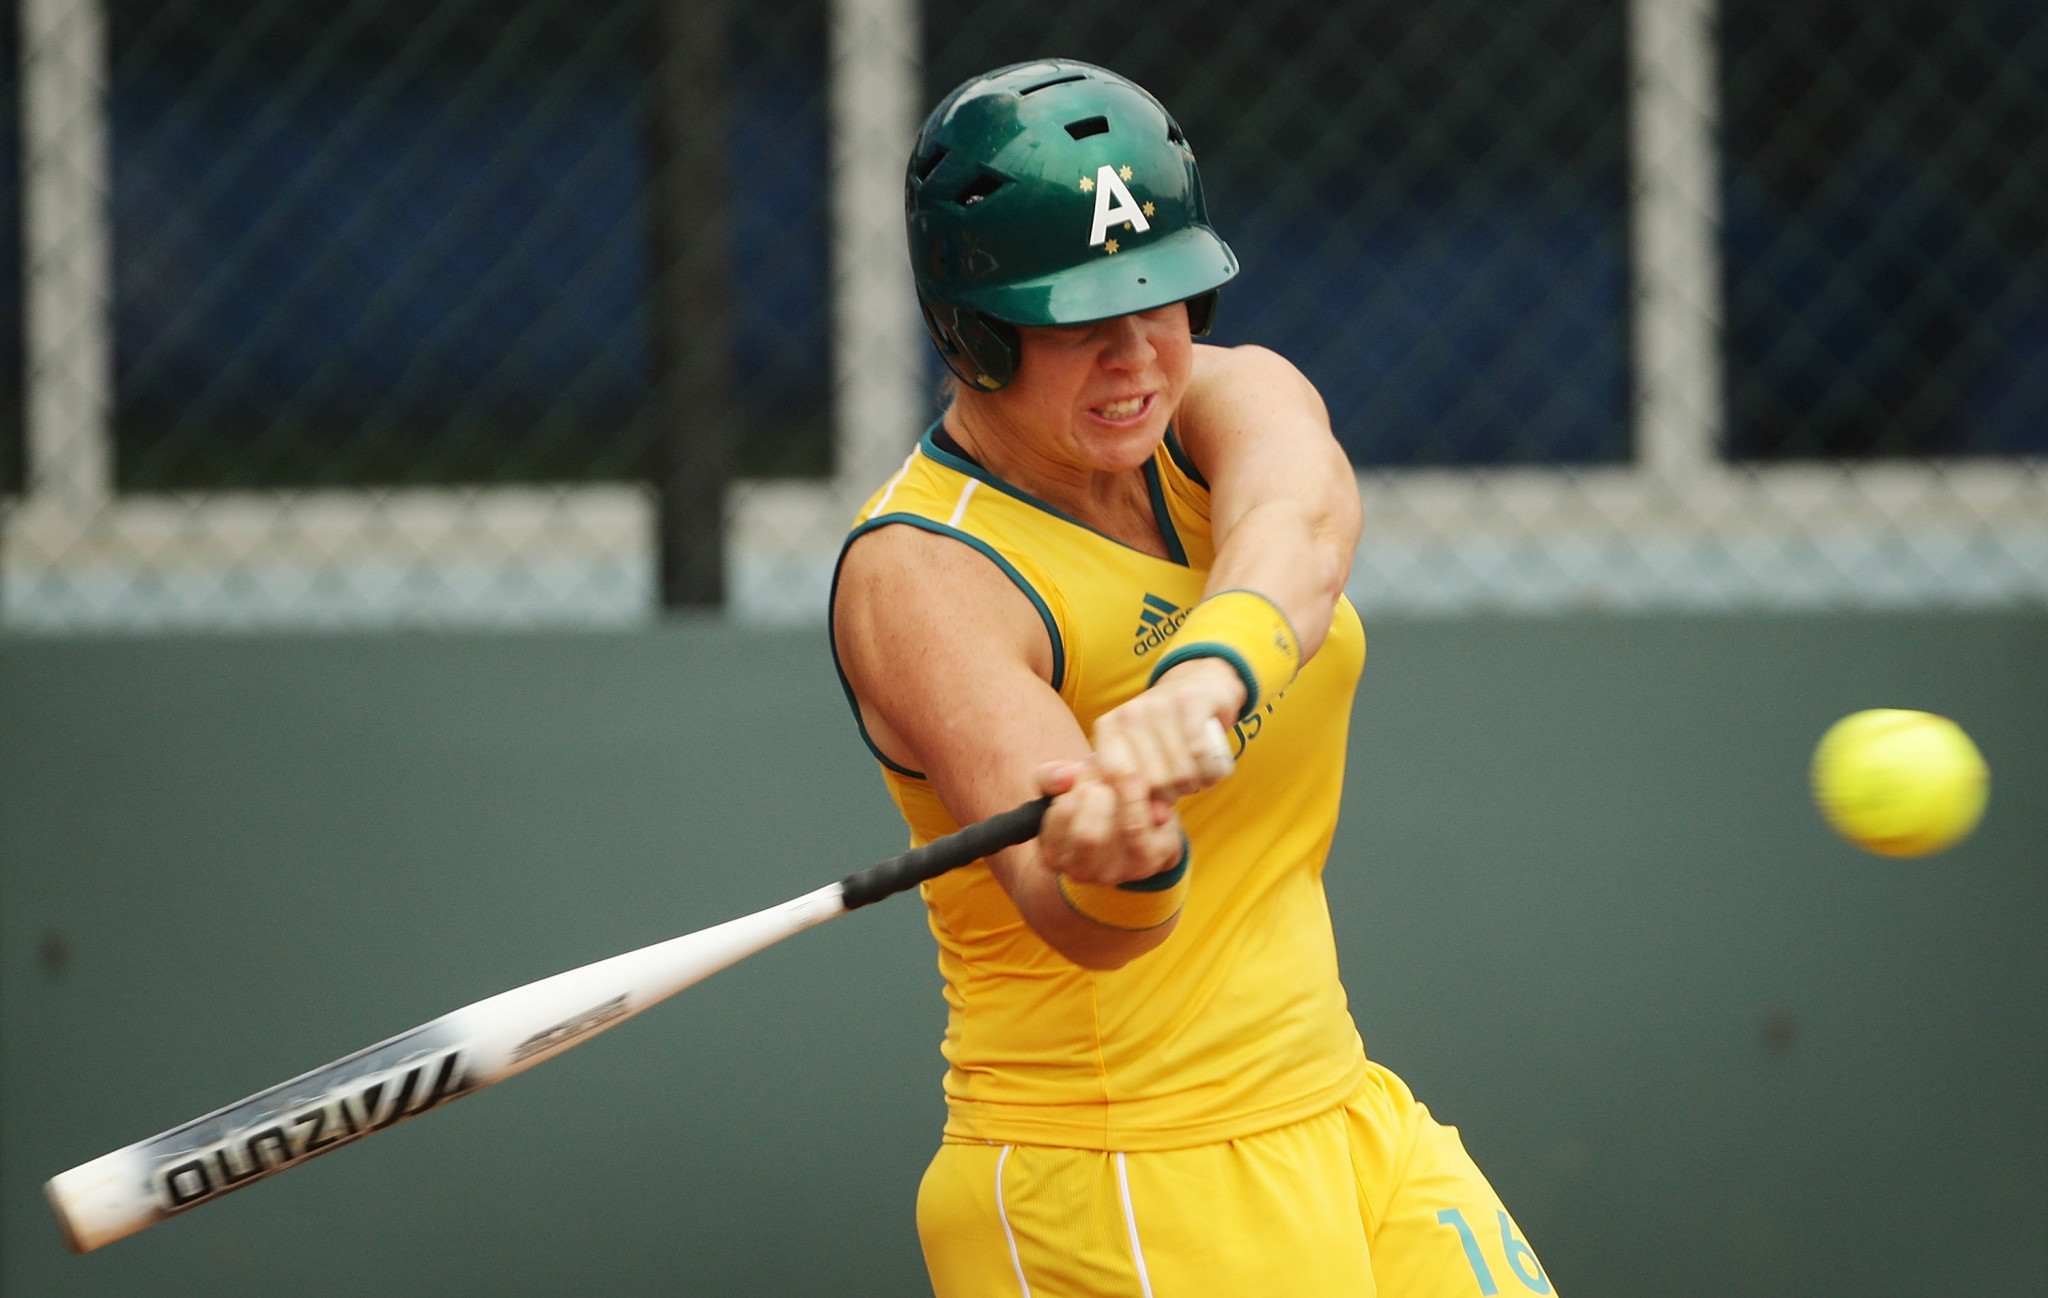 Australia have won a medal each time softball has appeared at the Olympics ©Getty Images